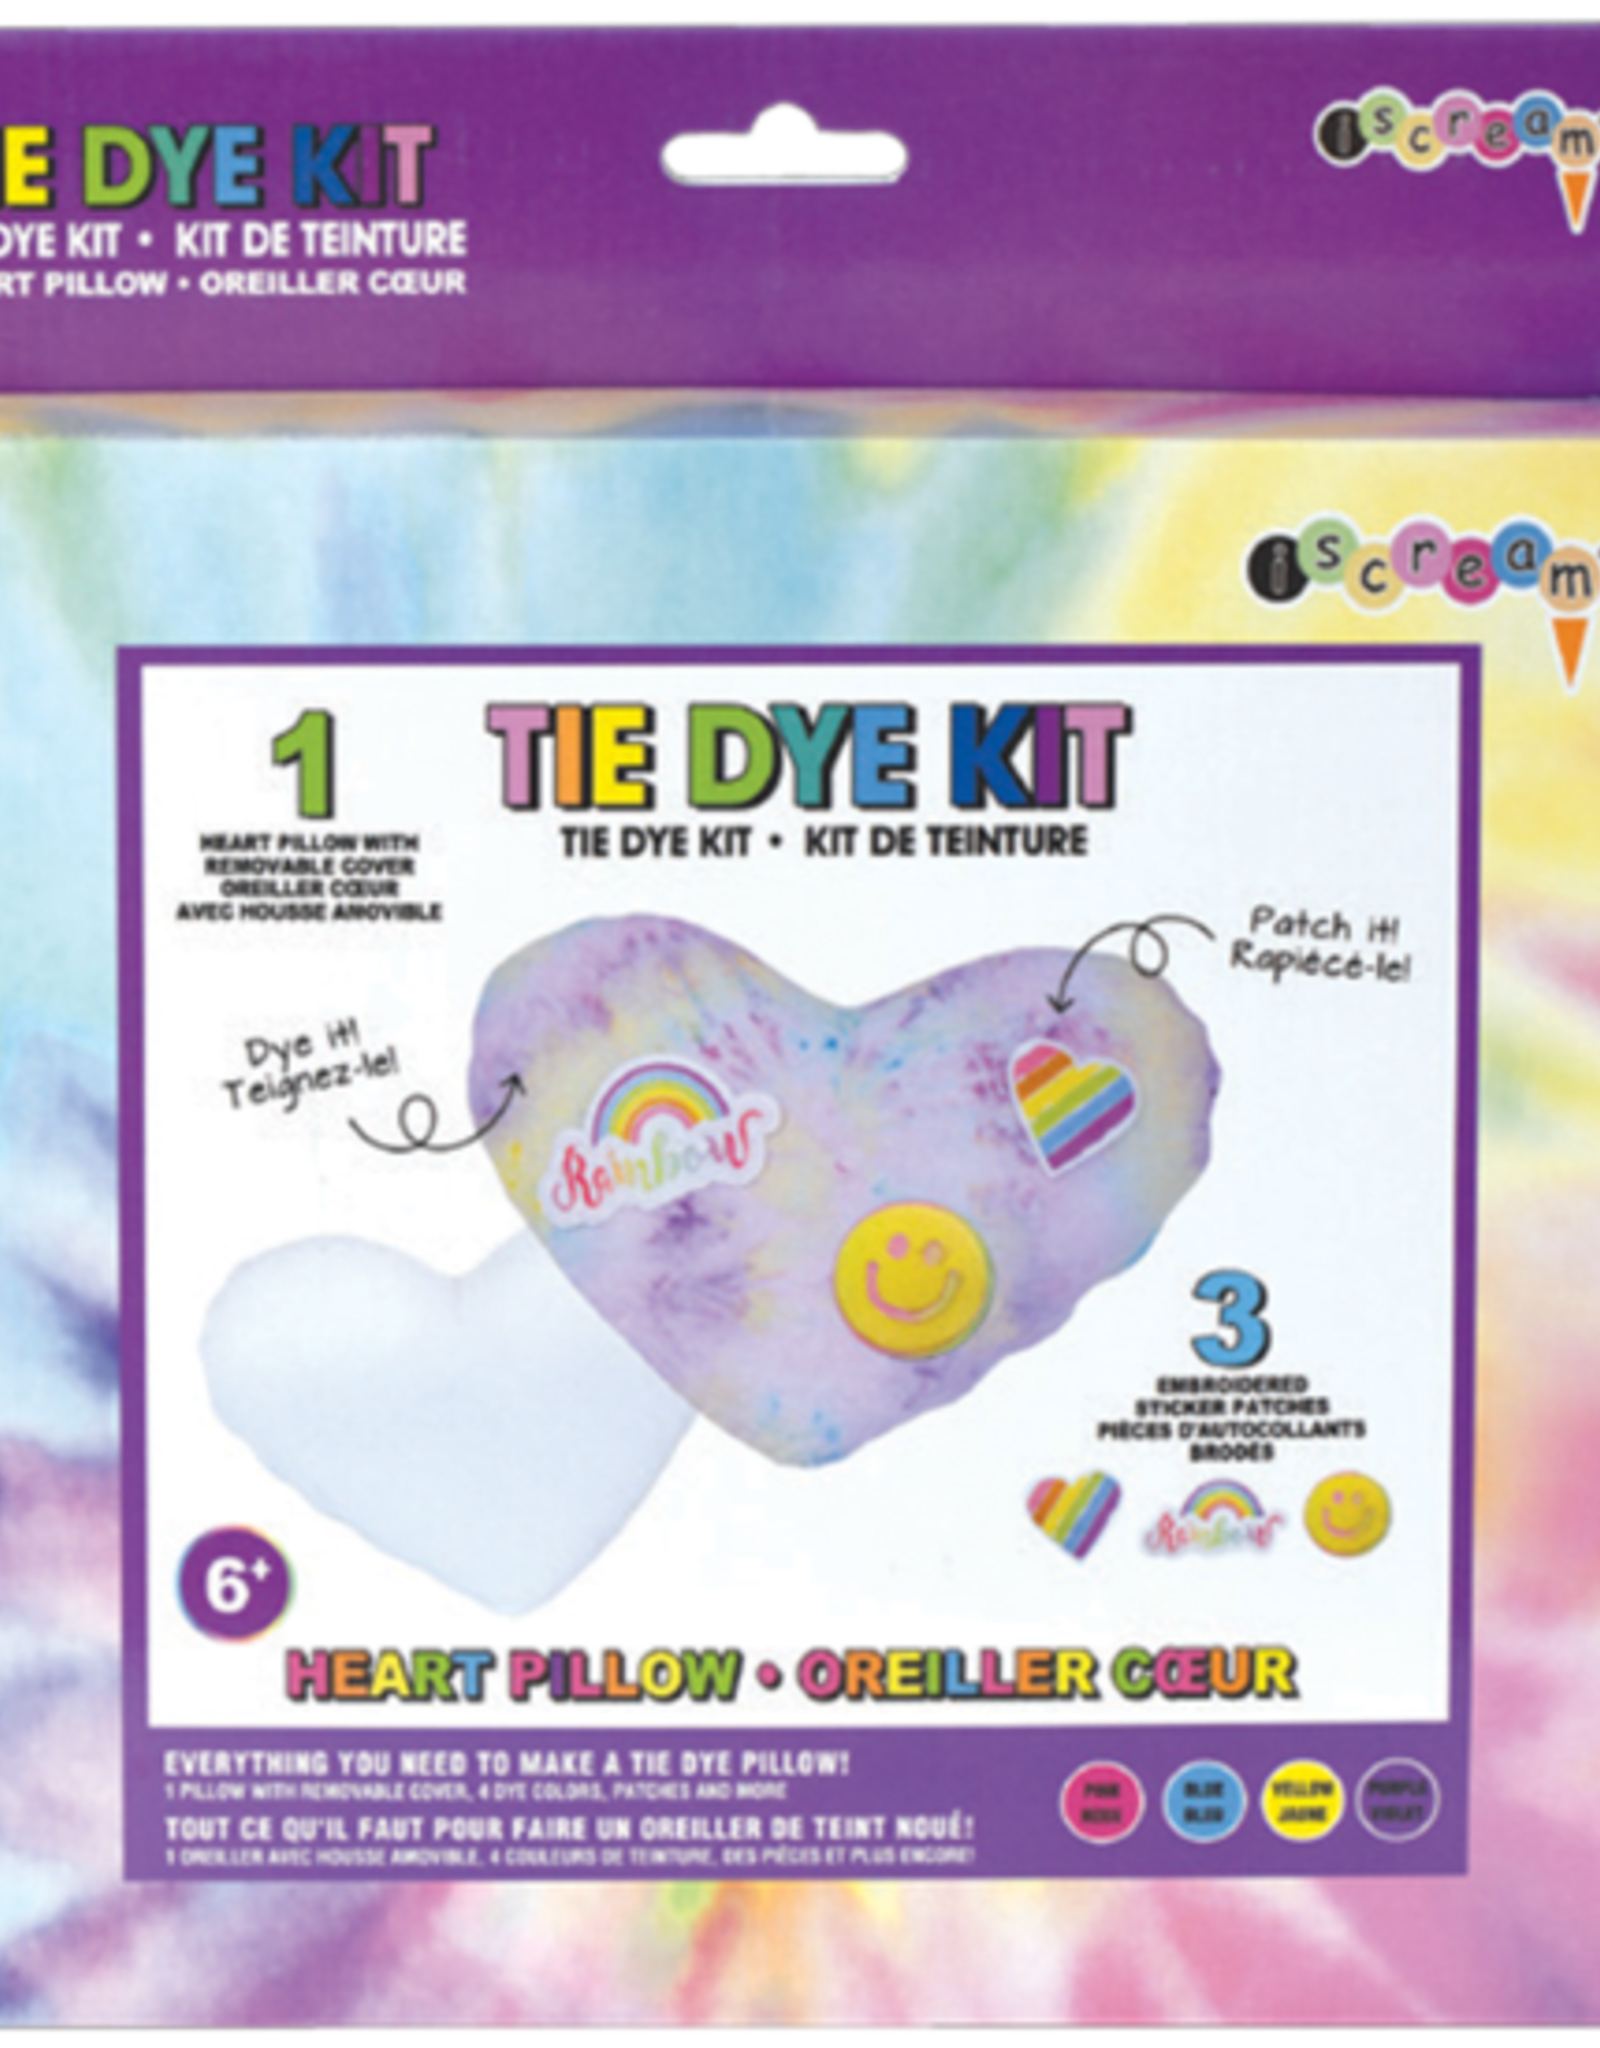 Iscream Heart Pillow With Patches Tie Dye Kit